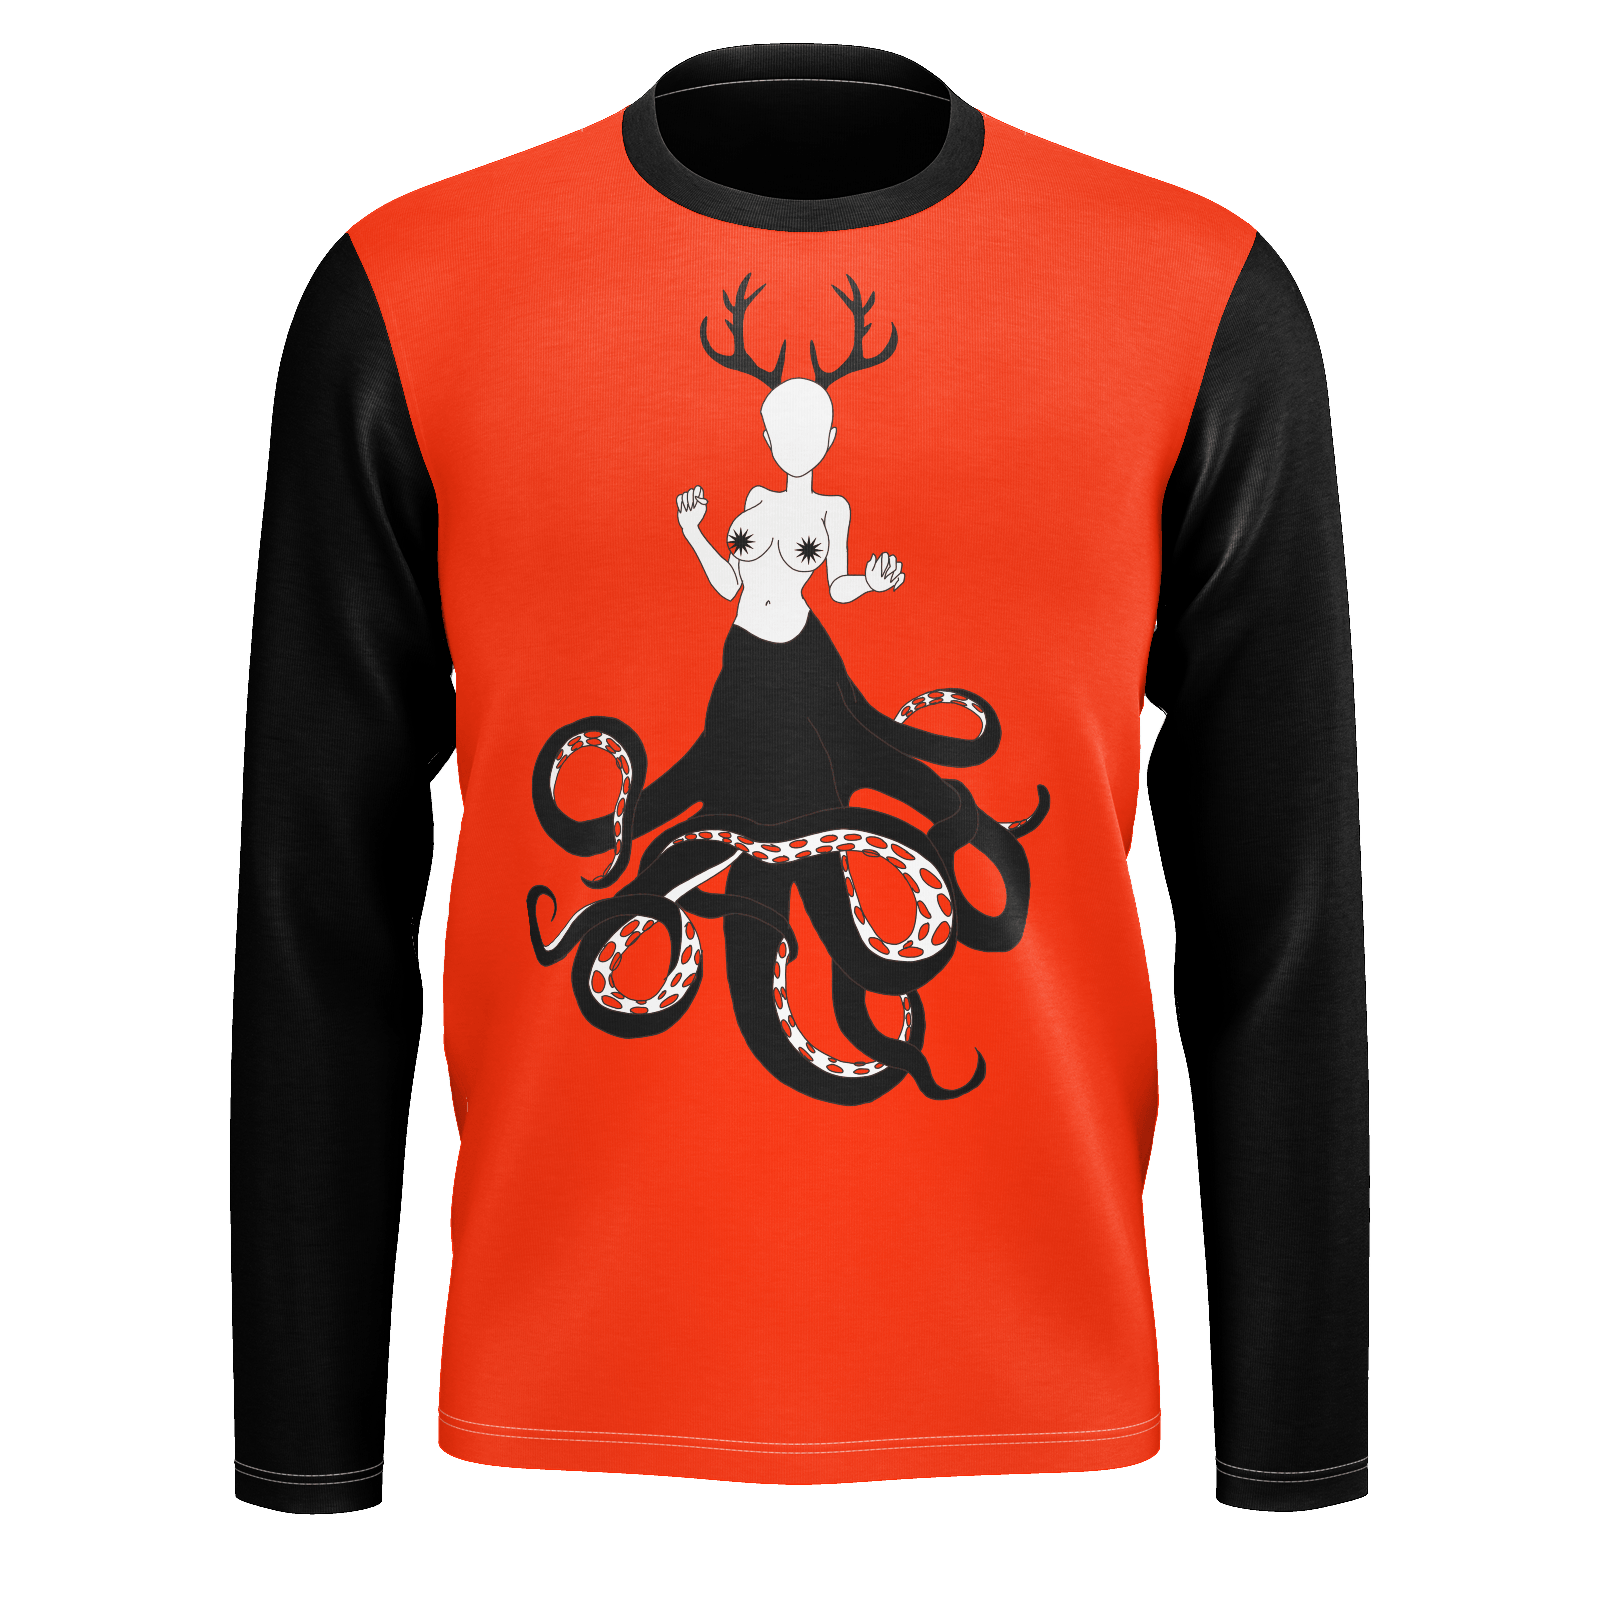 SpaceKittyCo Bloody Alien Trash Long Sleeve T-Shirt, E-Girl/E-Boy Fashion, Alternative Clothing Brand Grunge Fashion